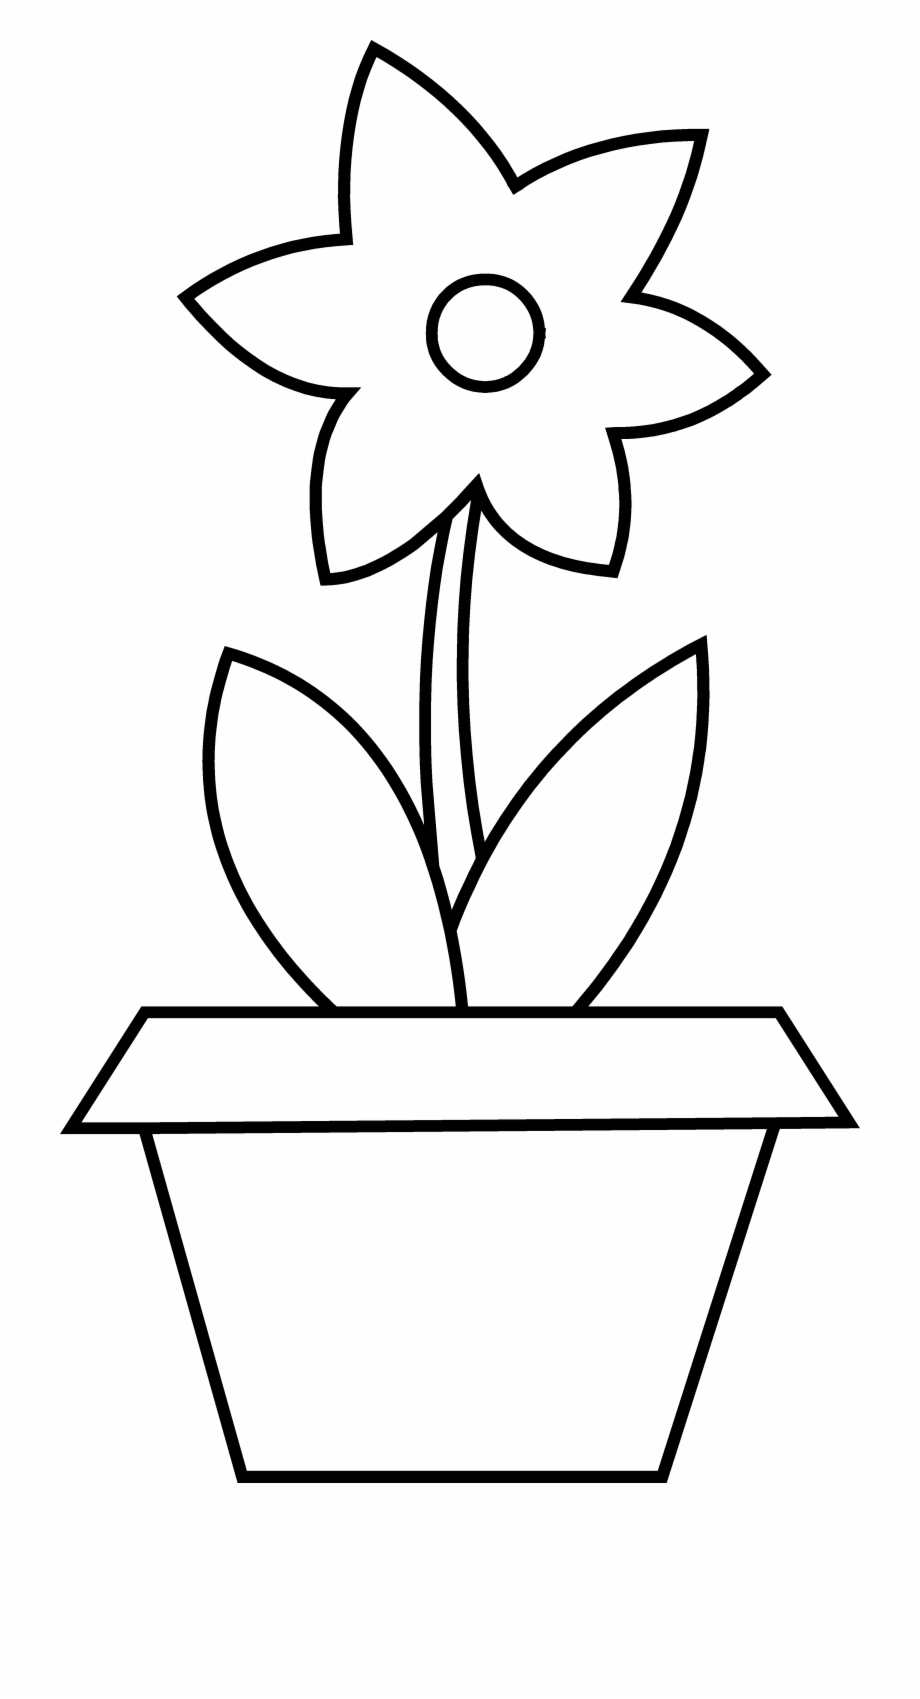 Plant Clipart Colouring Flower Pot Outlines Transparent Png Download 484027 Vippng